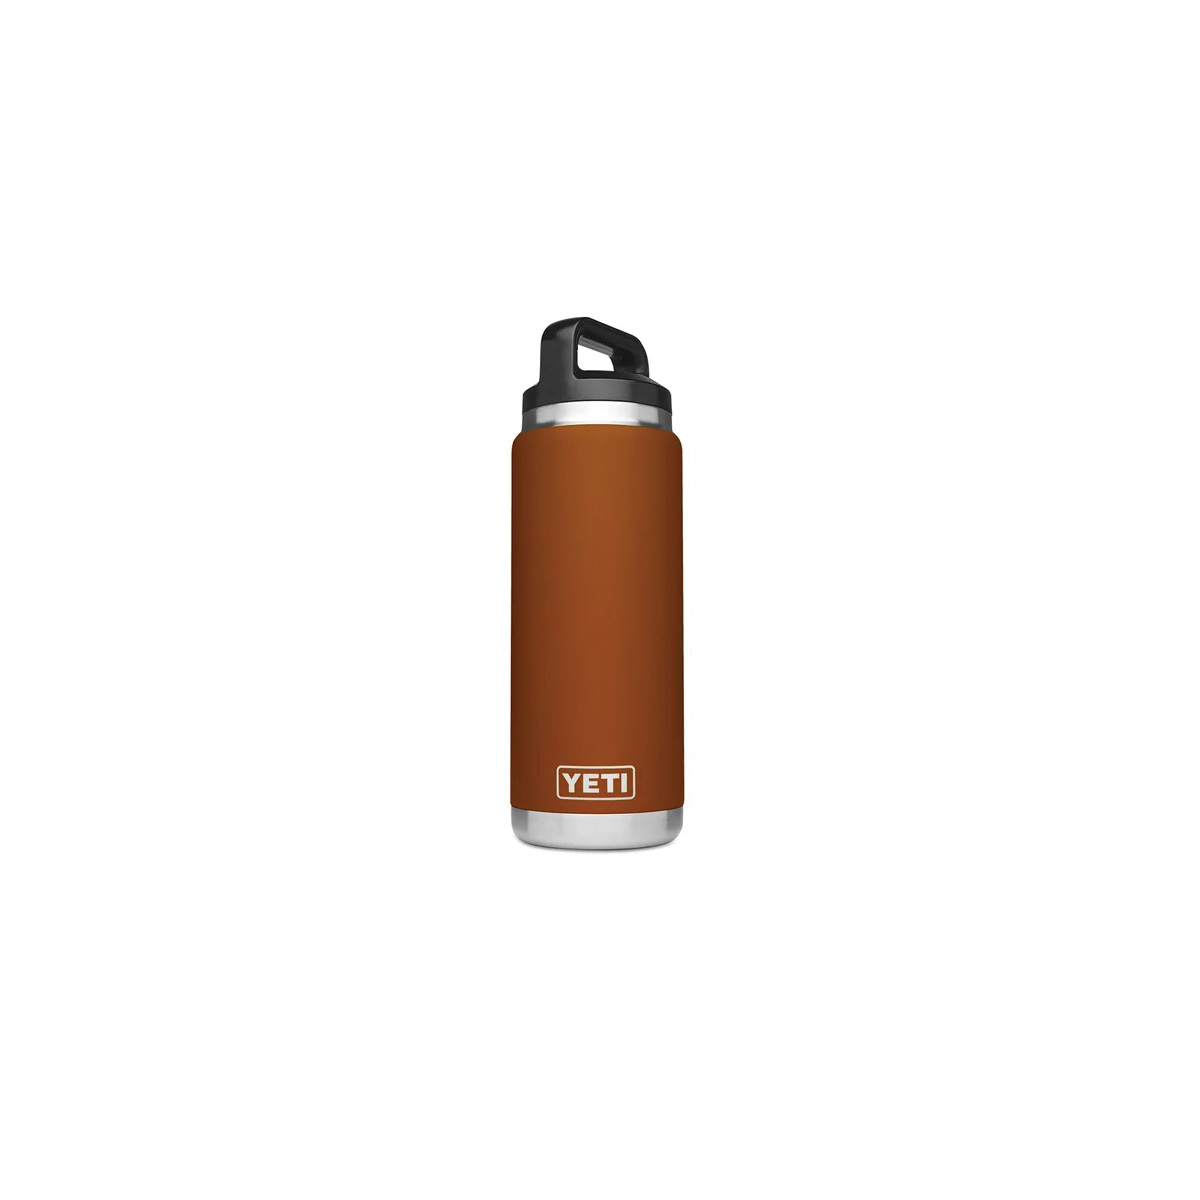 Picture of YETI Rambler 21071500125 Bottle With TripleHaul Cap, 26 oz Capacity, 18/8 Stainless Steel, Clay